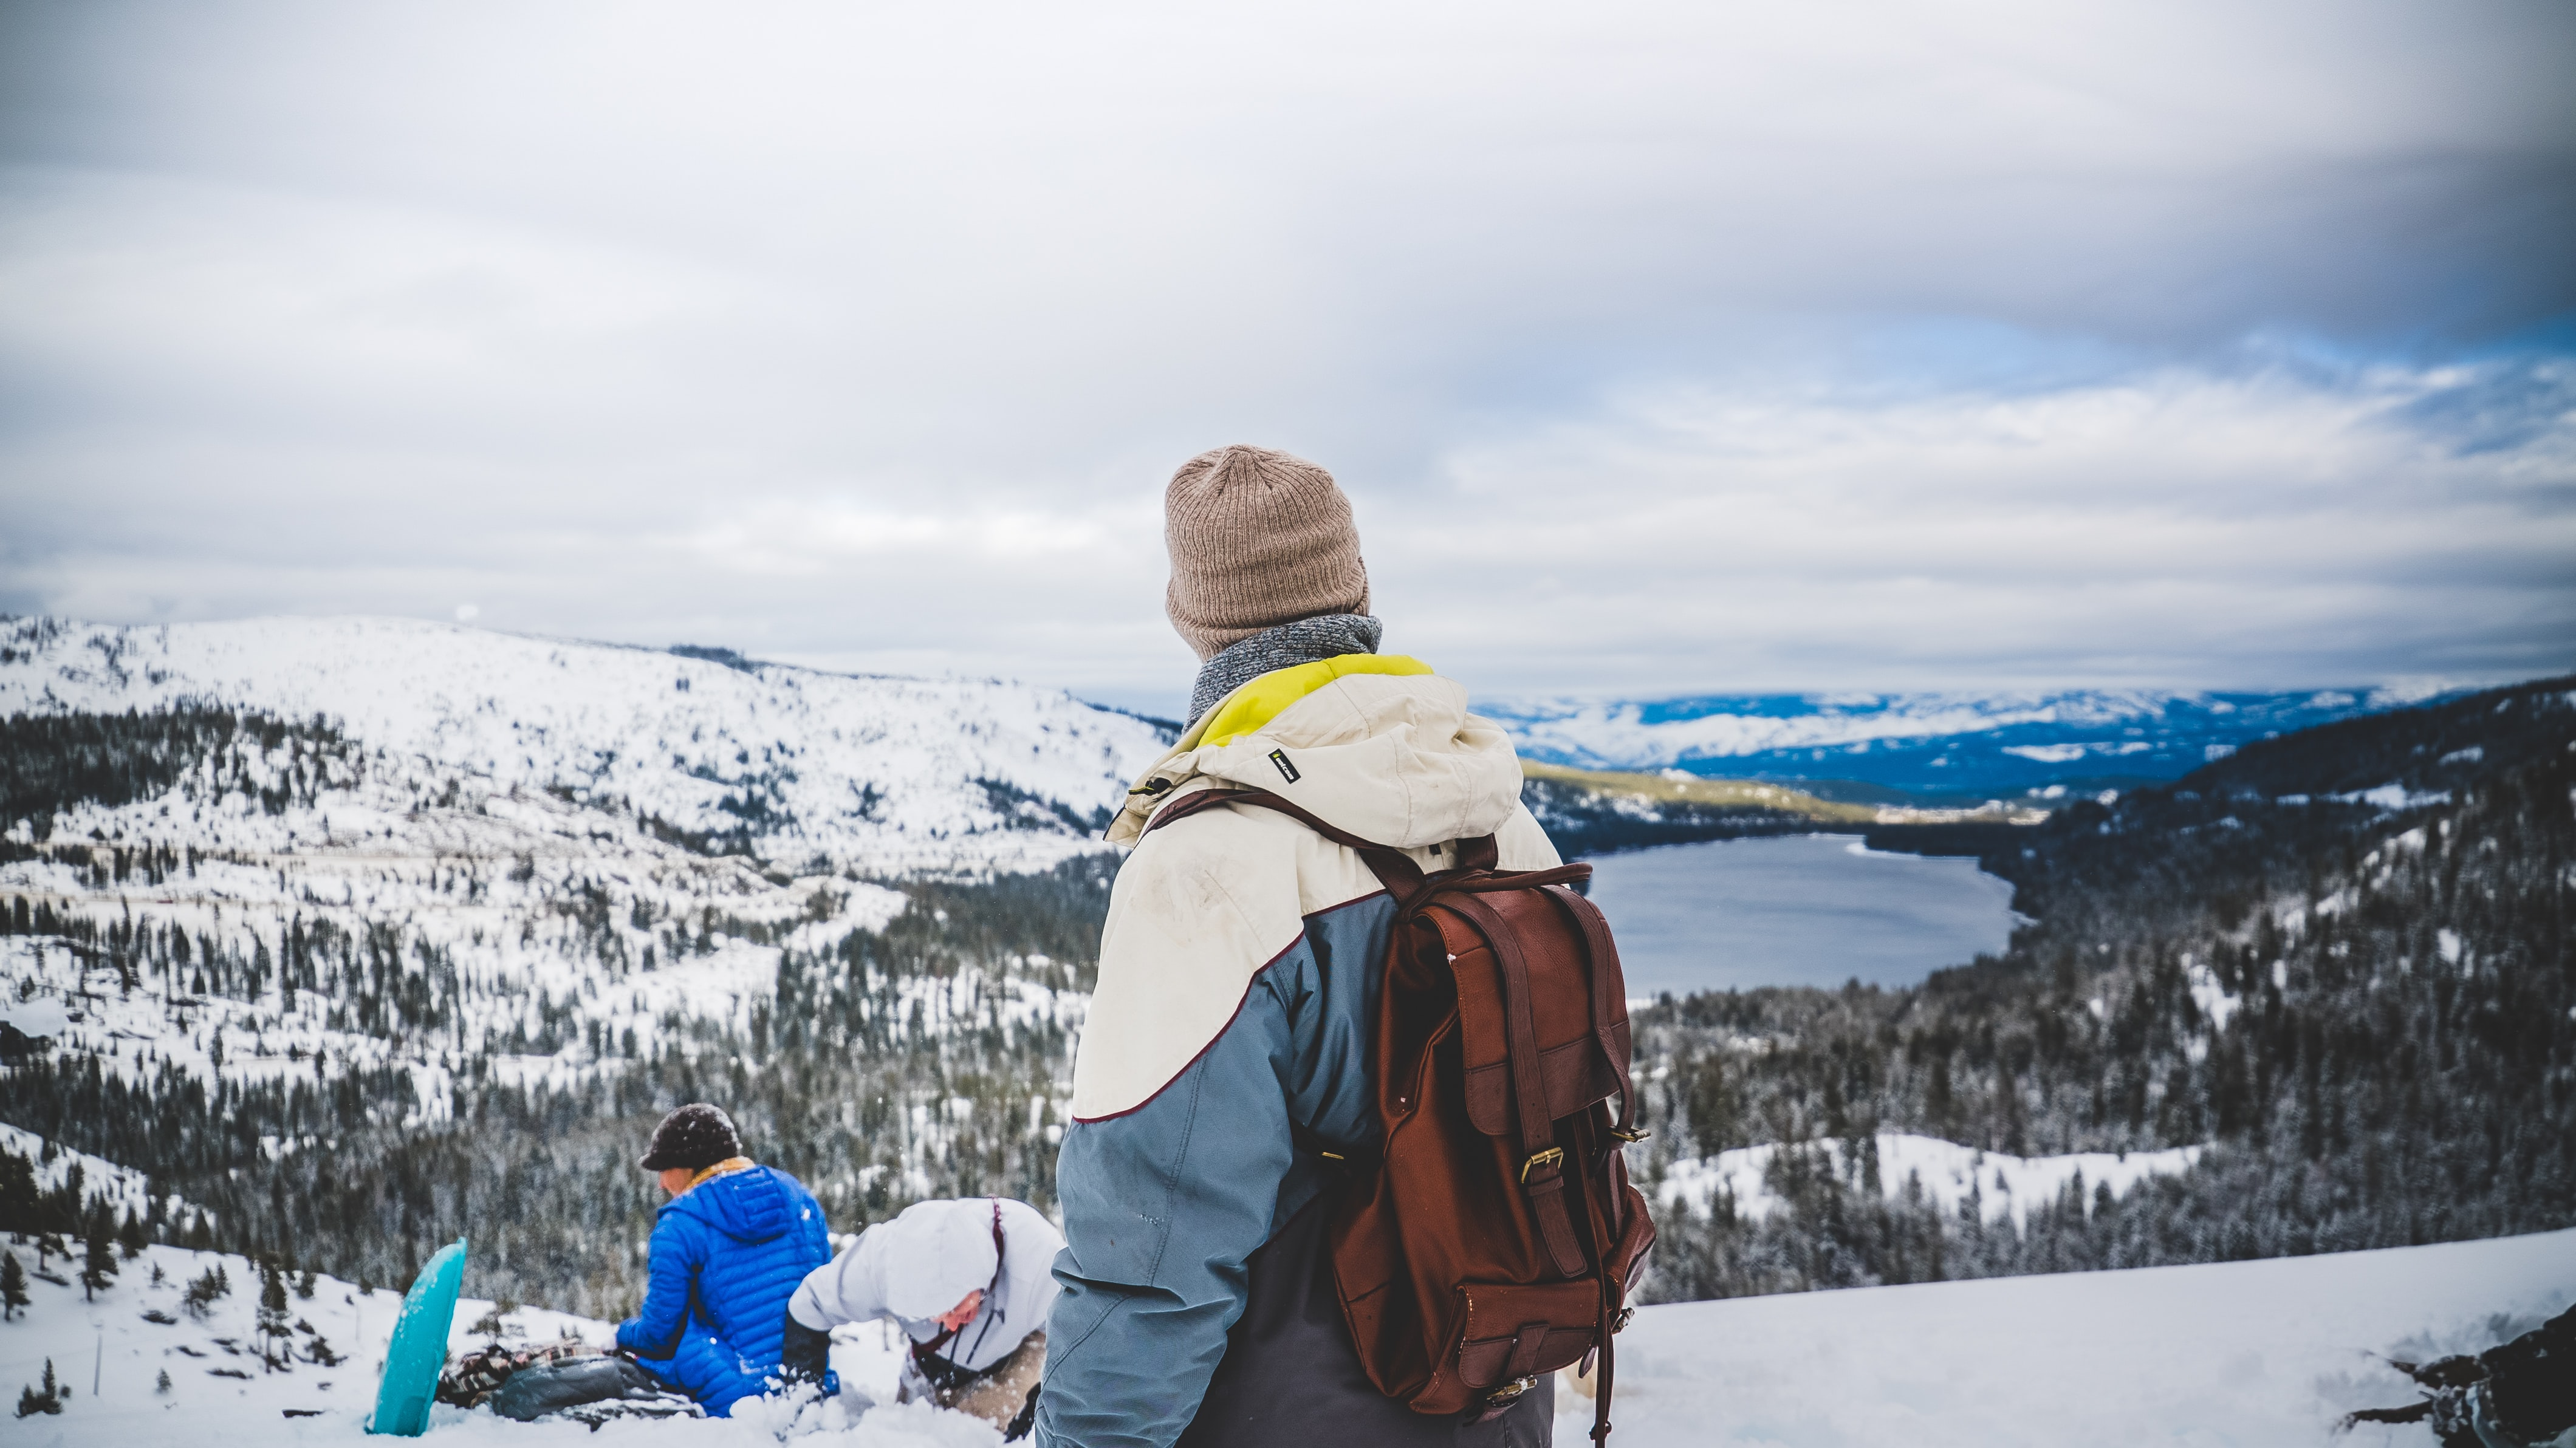 A backpacker in a beanie and a jacket looking at a snowy mountain valley with two people in the snow on his side